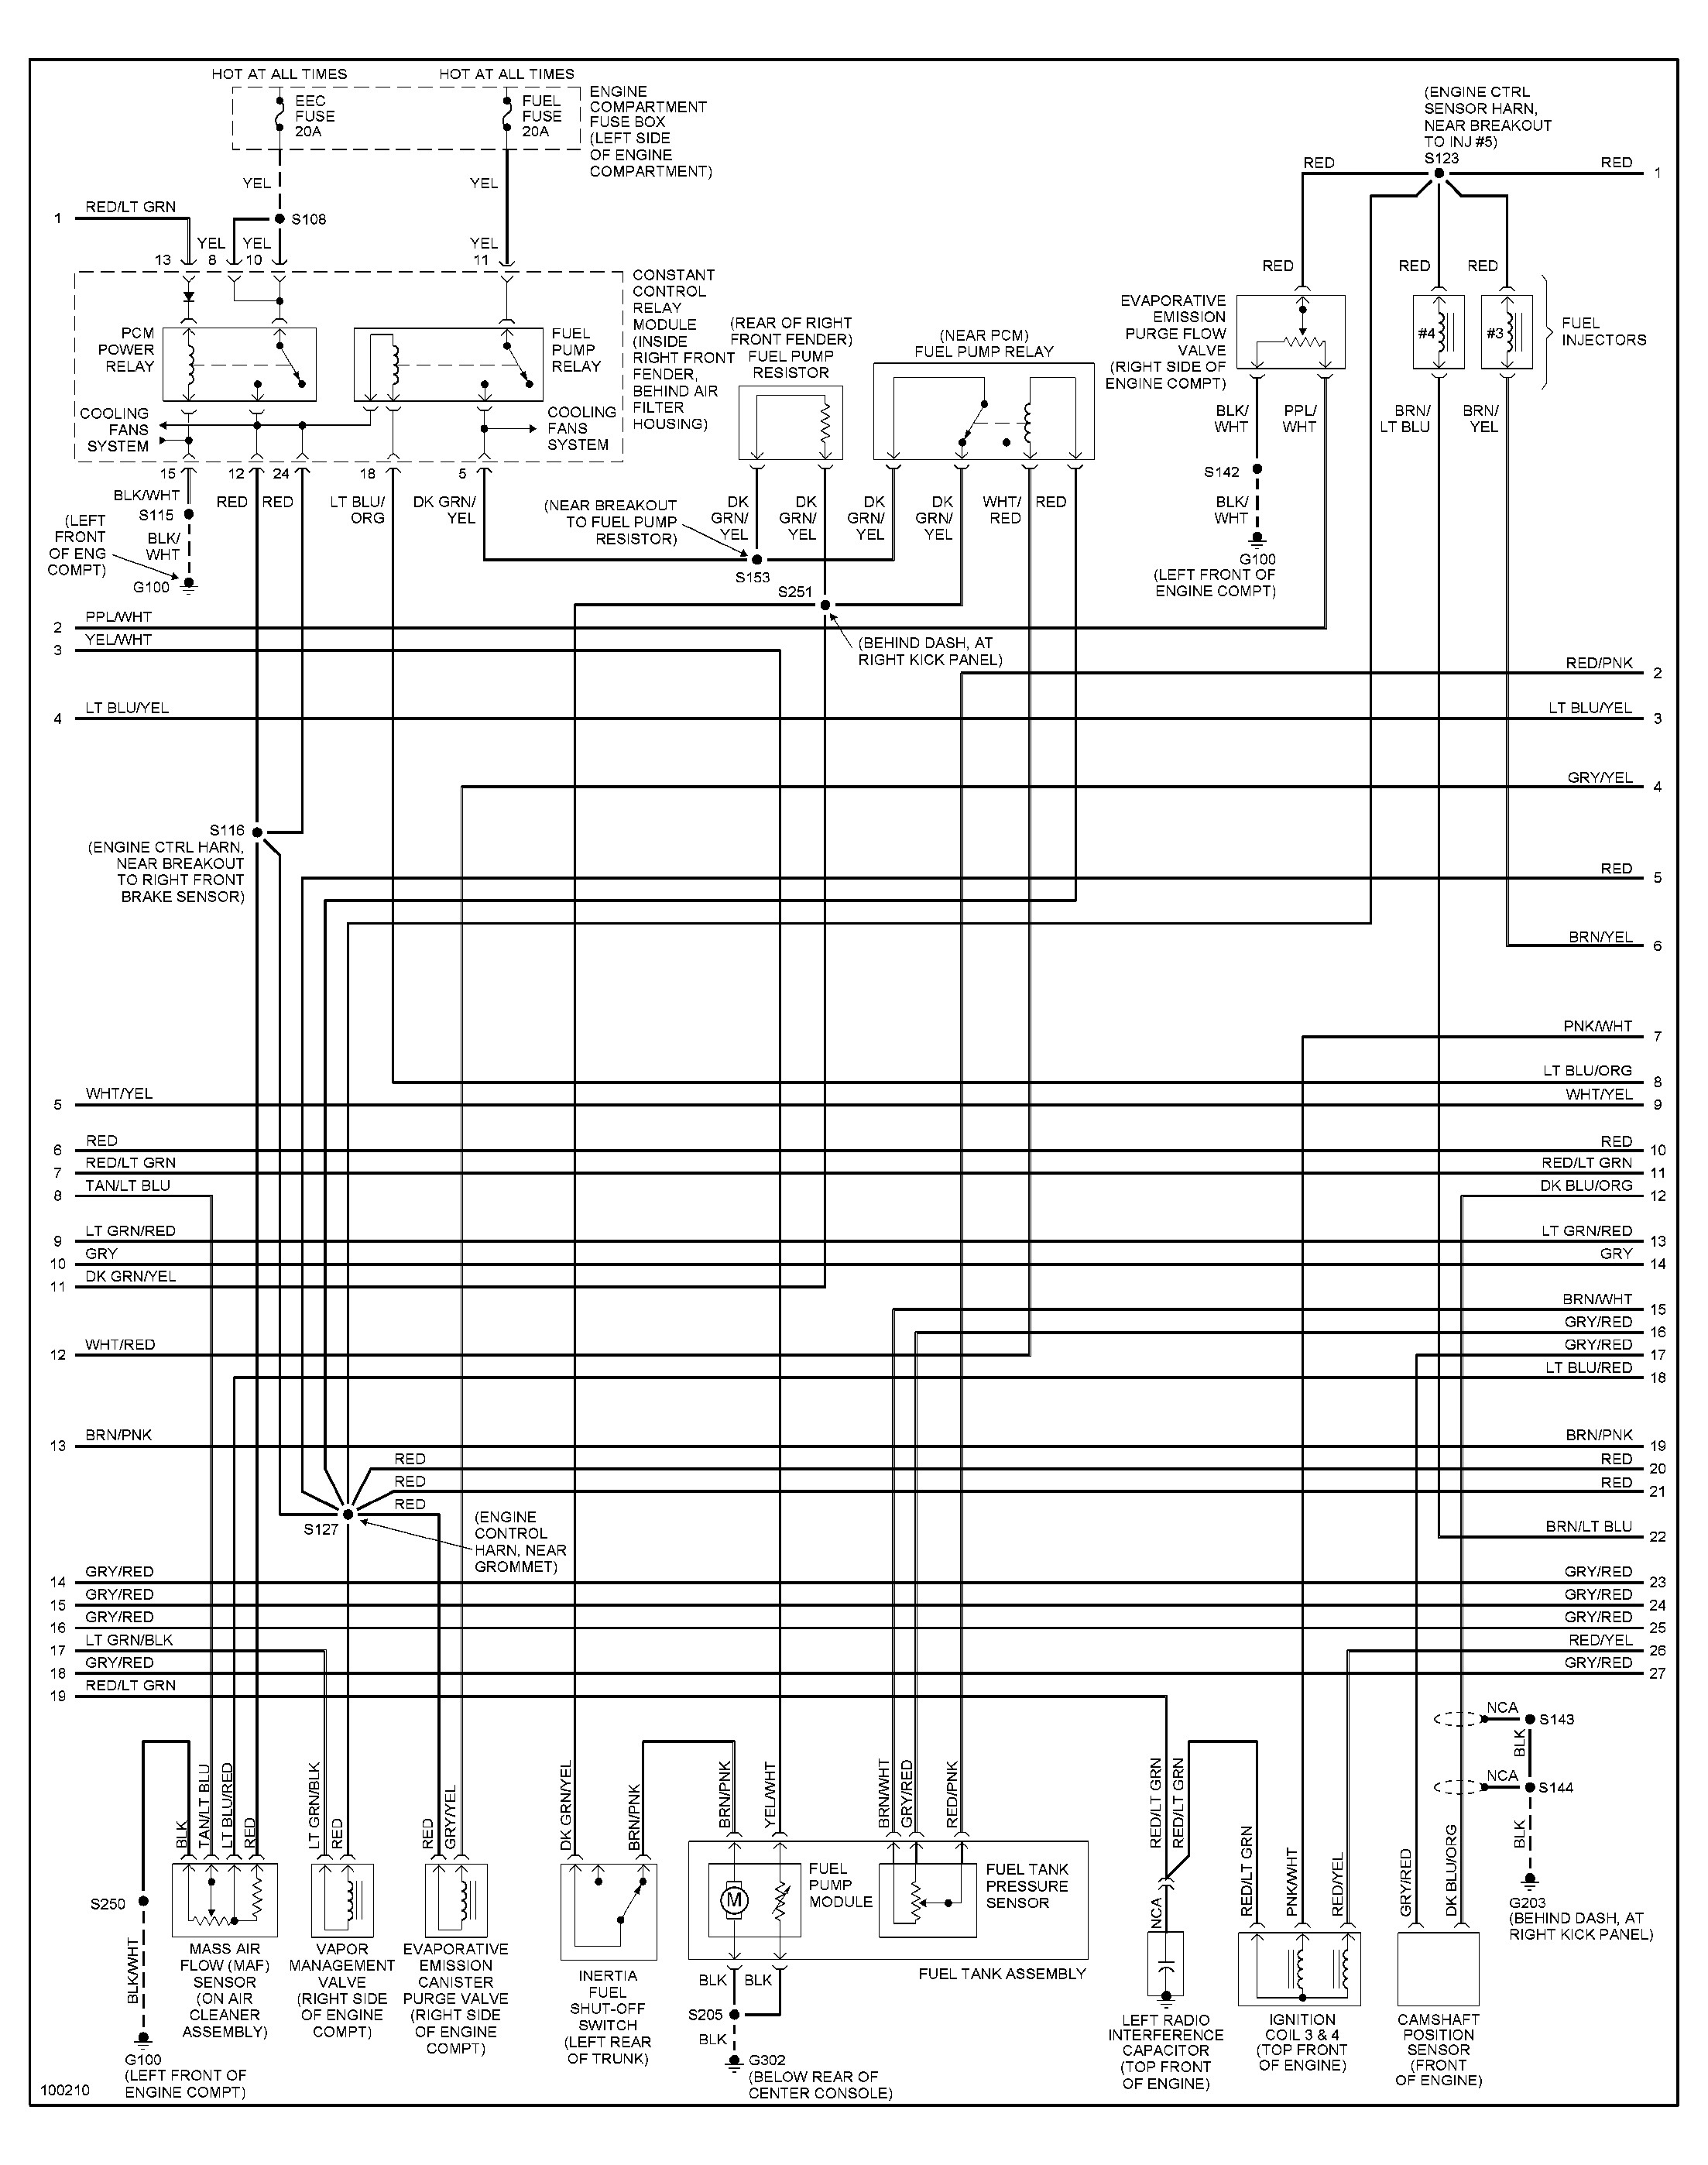 1998 ford Explorer Engine Diagram 1998 ford Mustang Wiring Diagram Gallery Of 1998 ford Explorer Engine Diagram